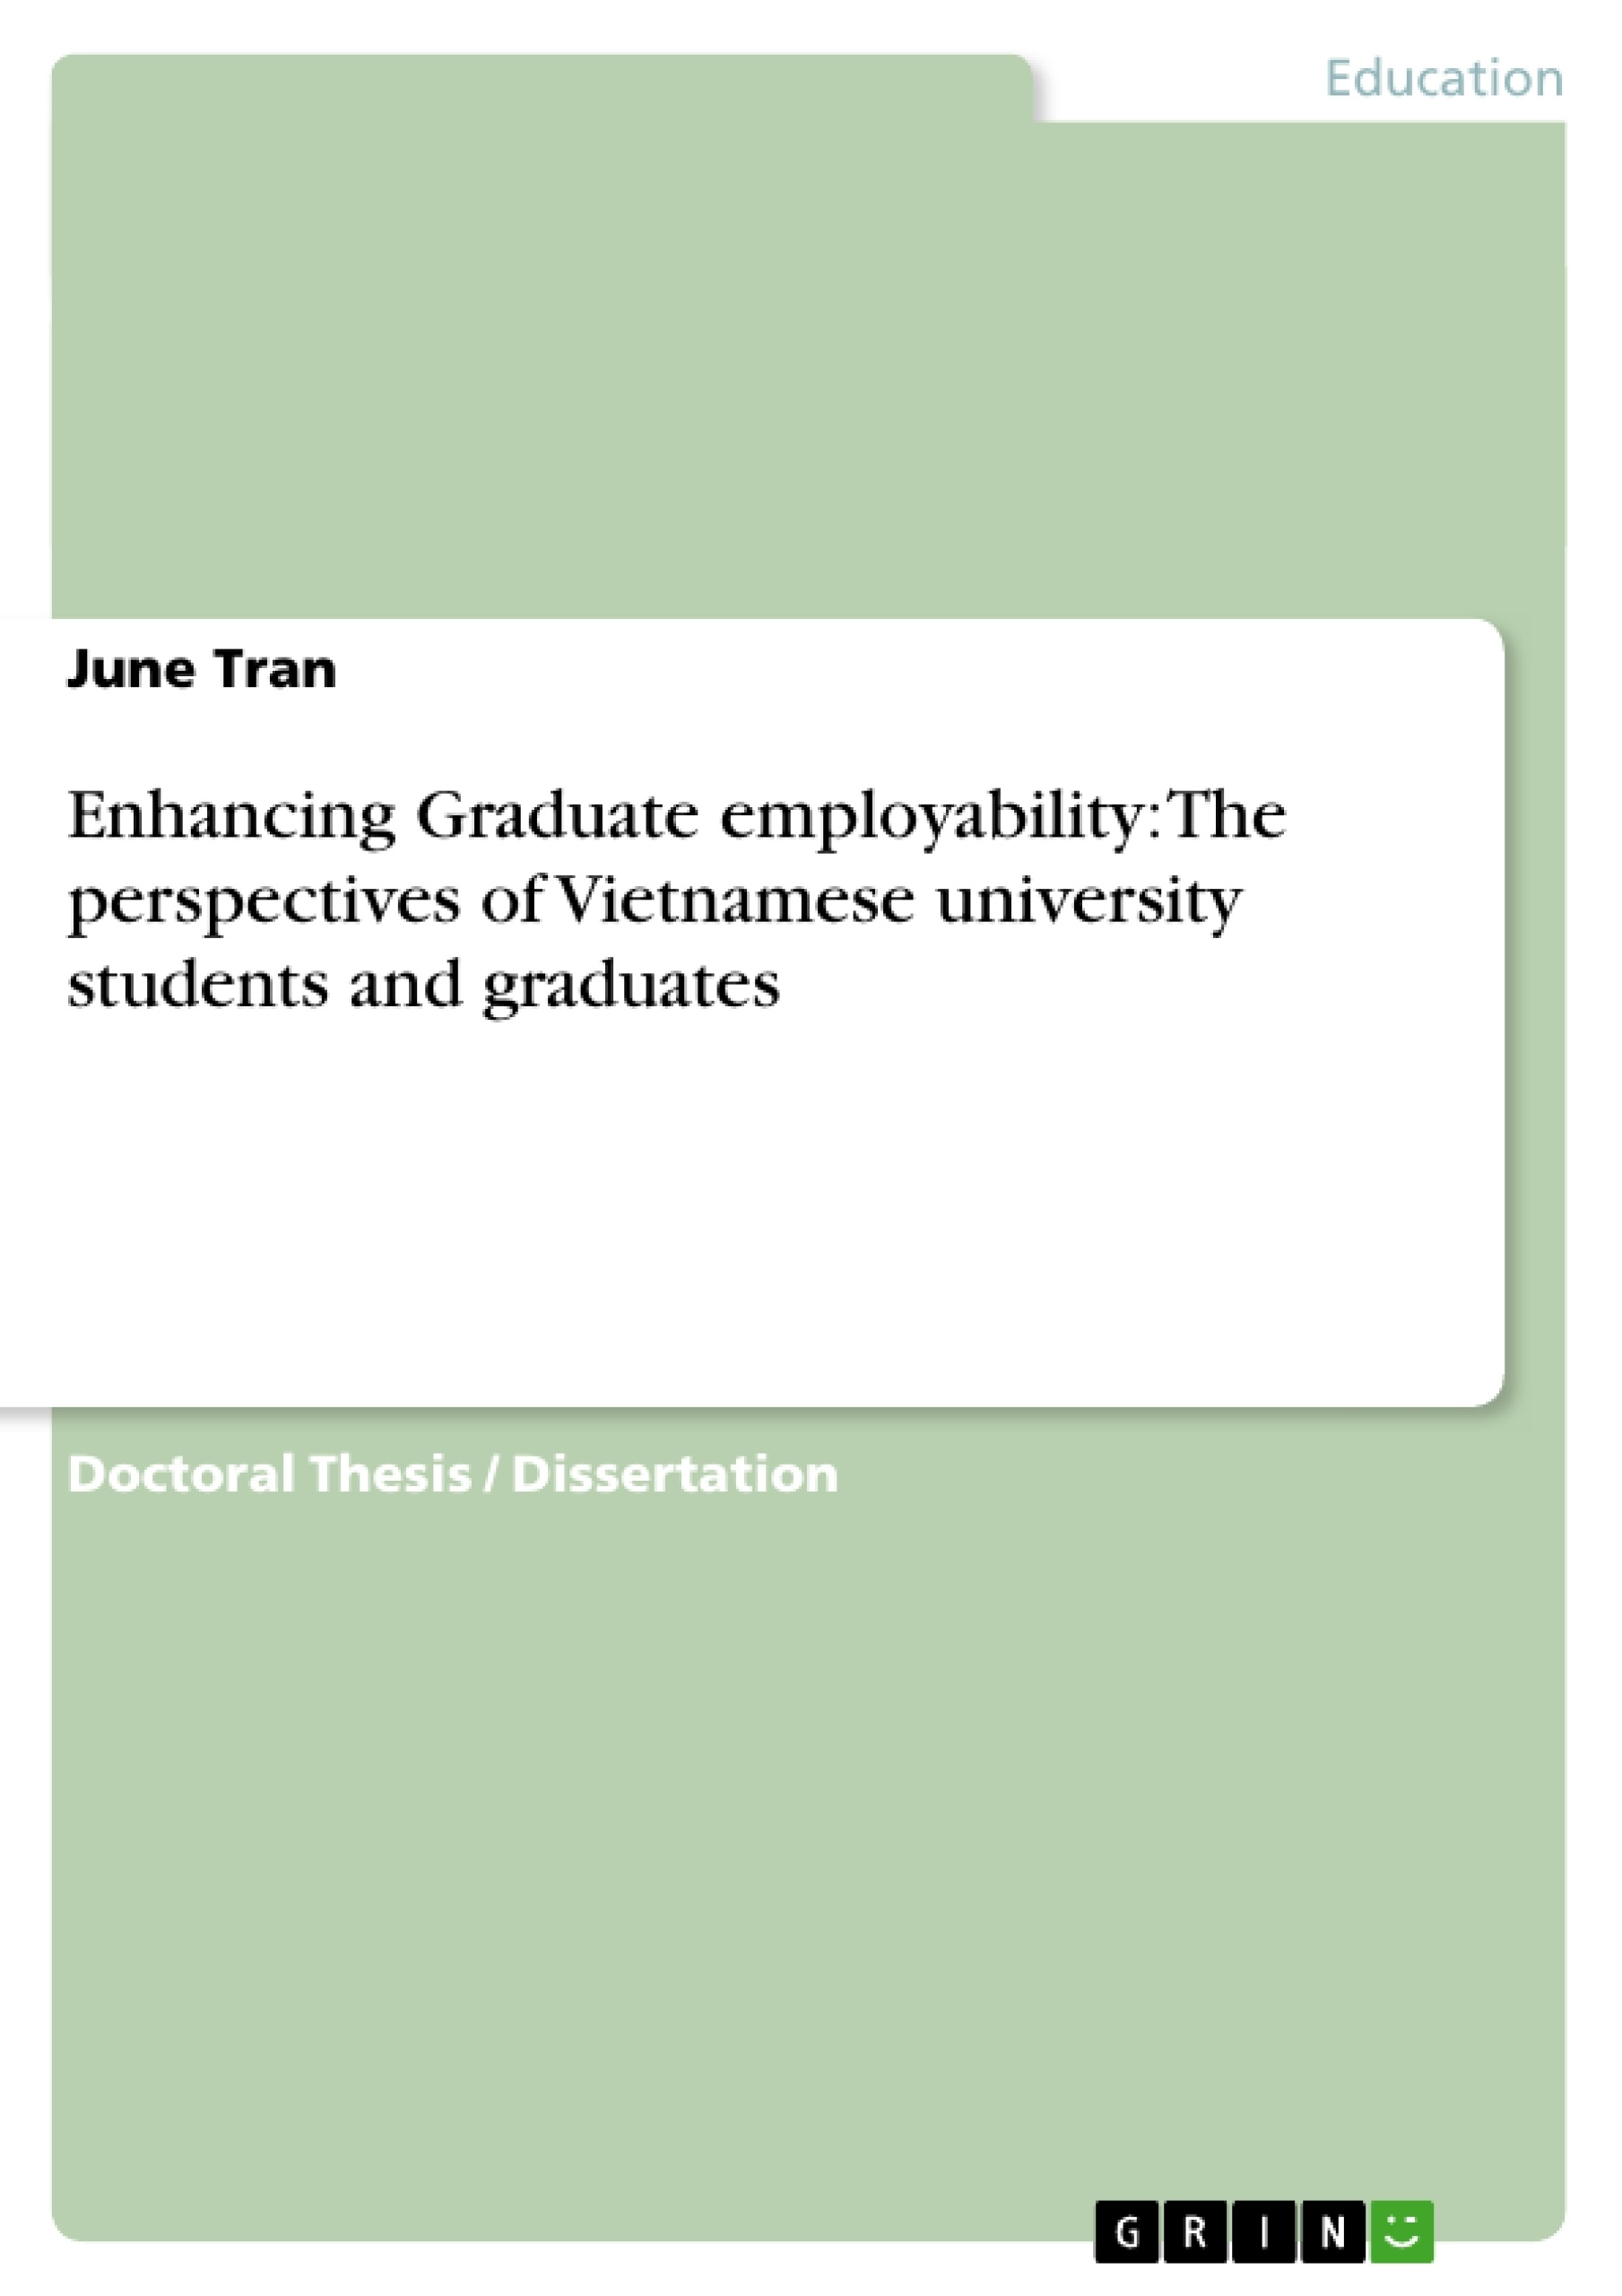 GRIN - Enhancing Graduate employability: The perspectives of Vietnamese  university students and graduates